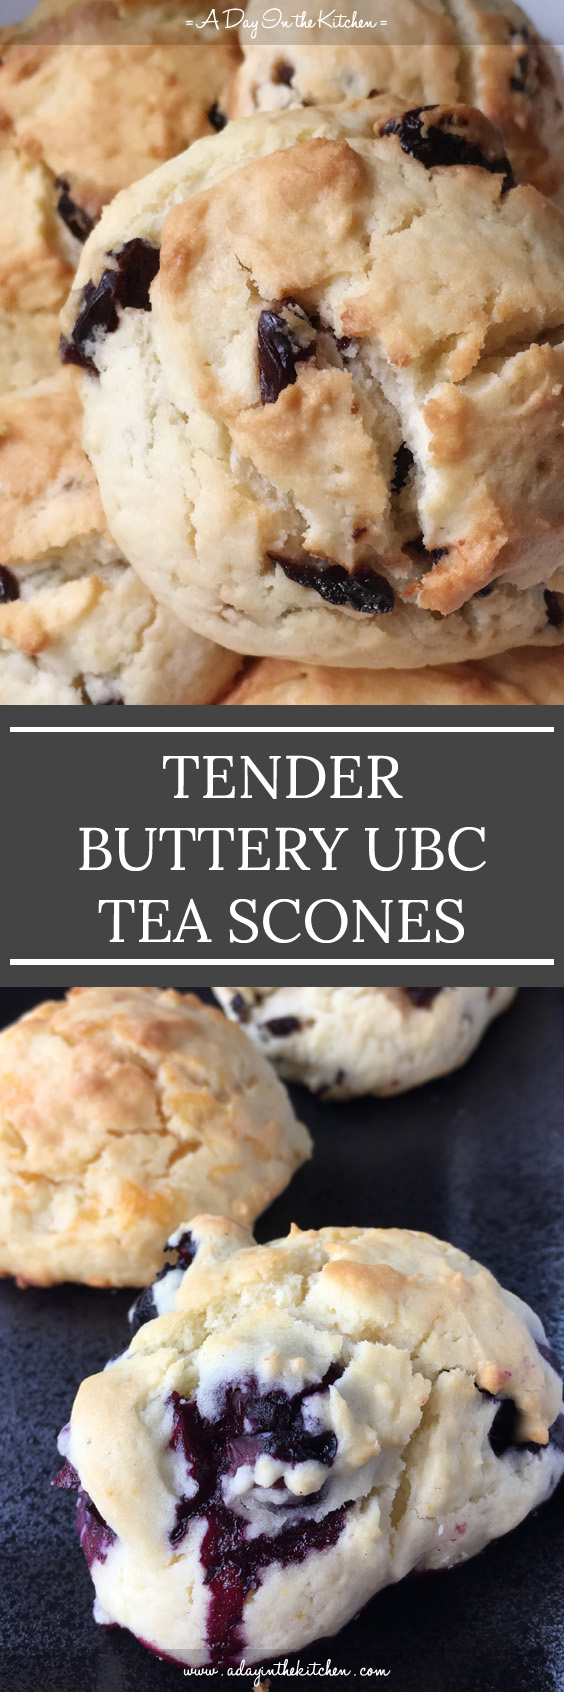 These are not your typical, dry, hard-to-swallow scones! These tender buttery UBC tea scones are soft and melt-in-your-mouth delicious! Easy to make and easy to eat! #scones #teascones #ubcscones #cheesescones #blueberryscones #cranberryscones #cherryscones